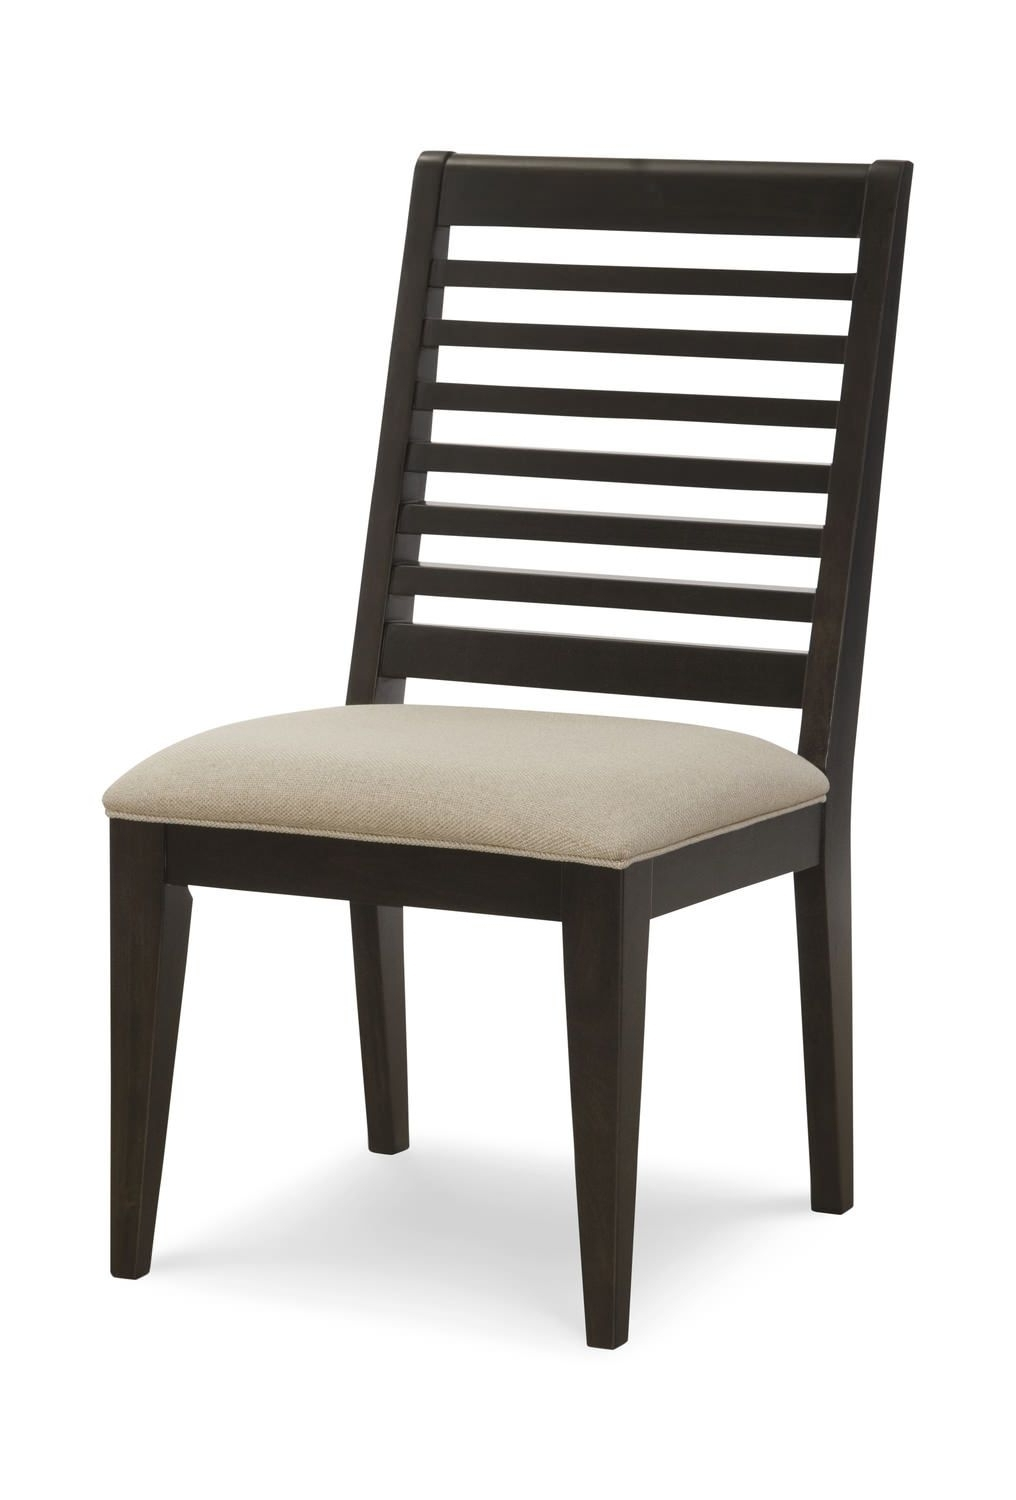 Pinterest With Regard To Candice Ii Slat Back Side Chairs (View 17 of 20)